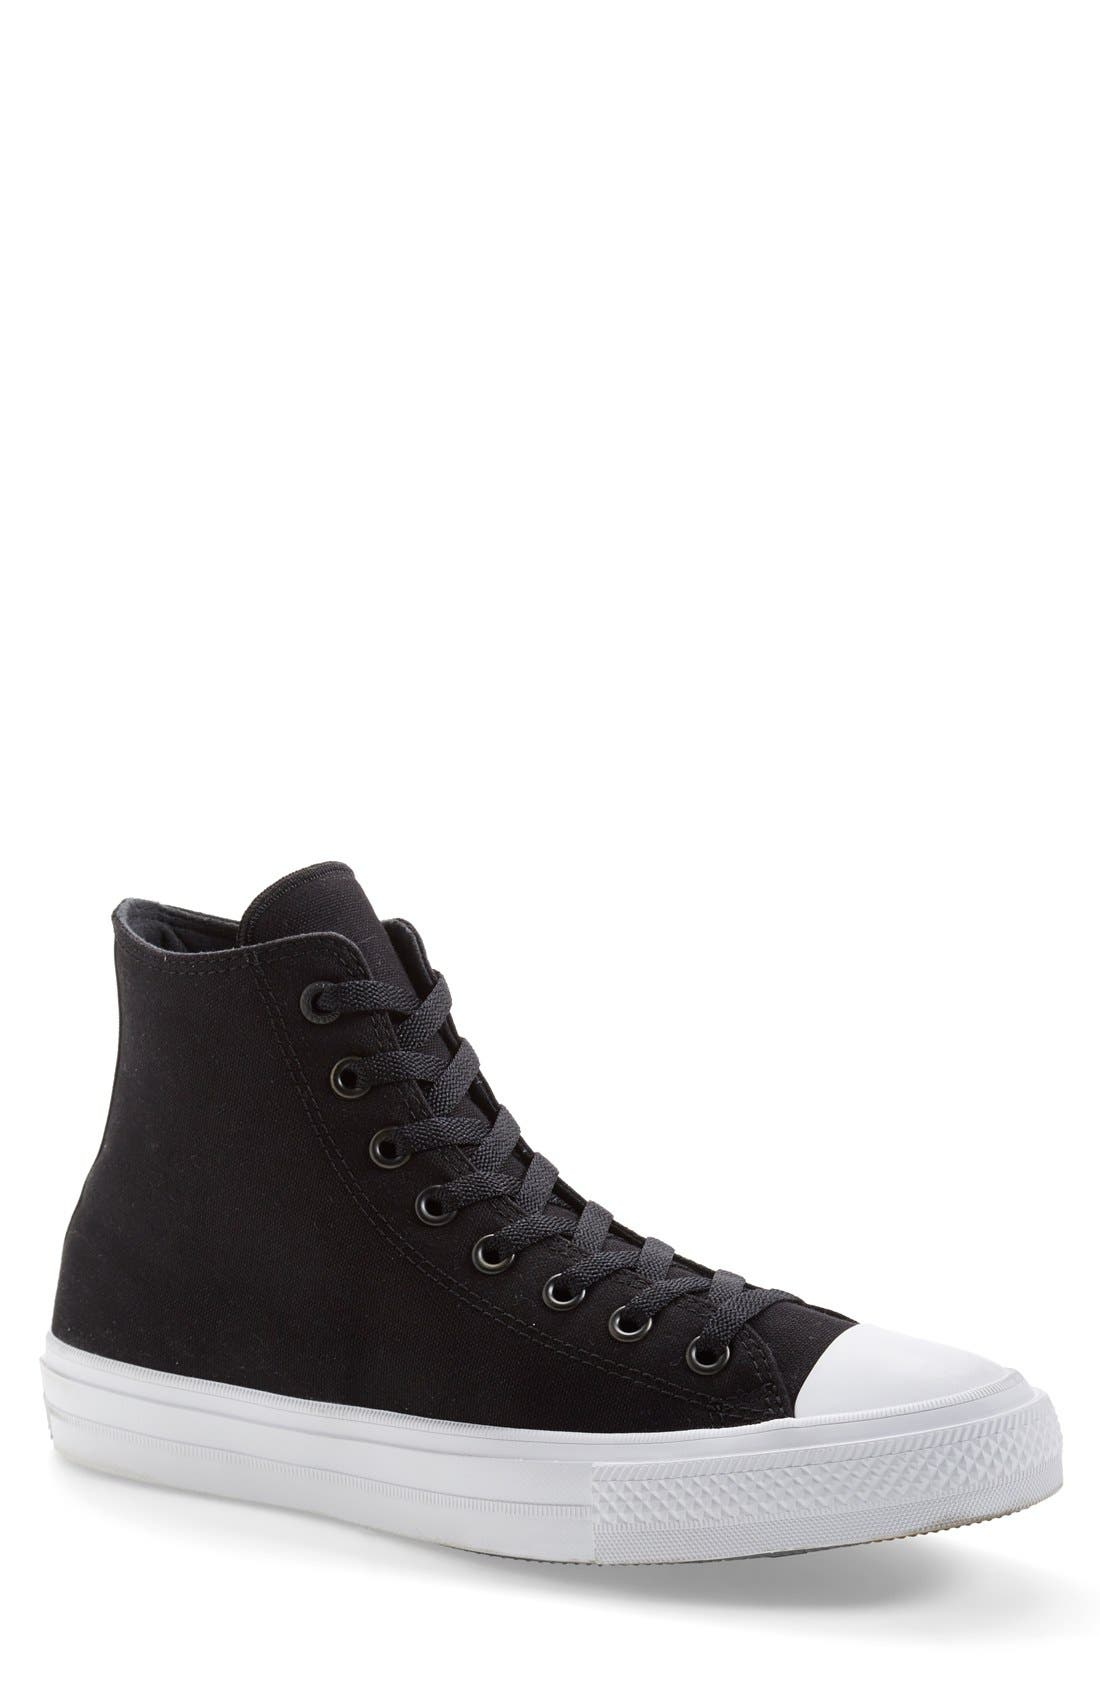 Chuck Taylor<sup>®</sup> All Star<sup>®</sup> Chuck II High Top Sneaker,                         Main,                         color, Black/ White/ Navy Canvas